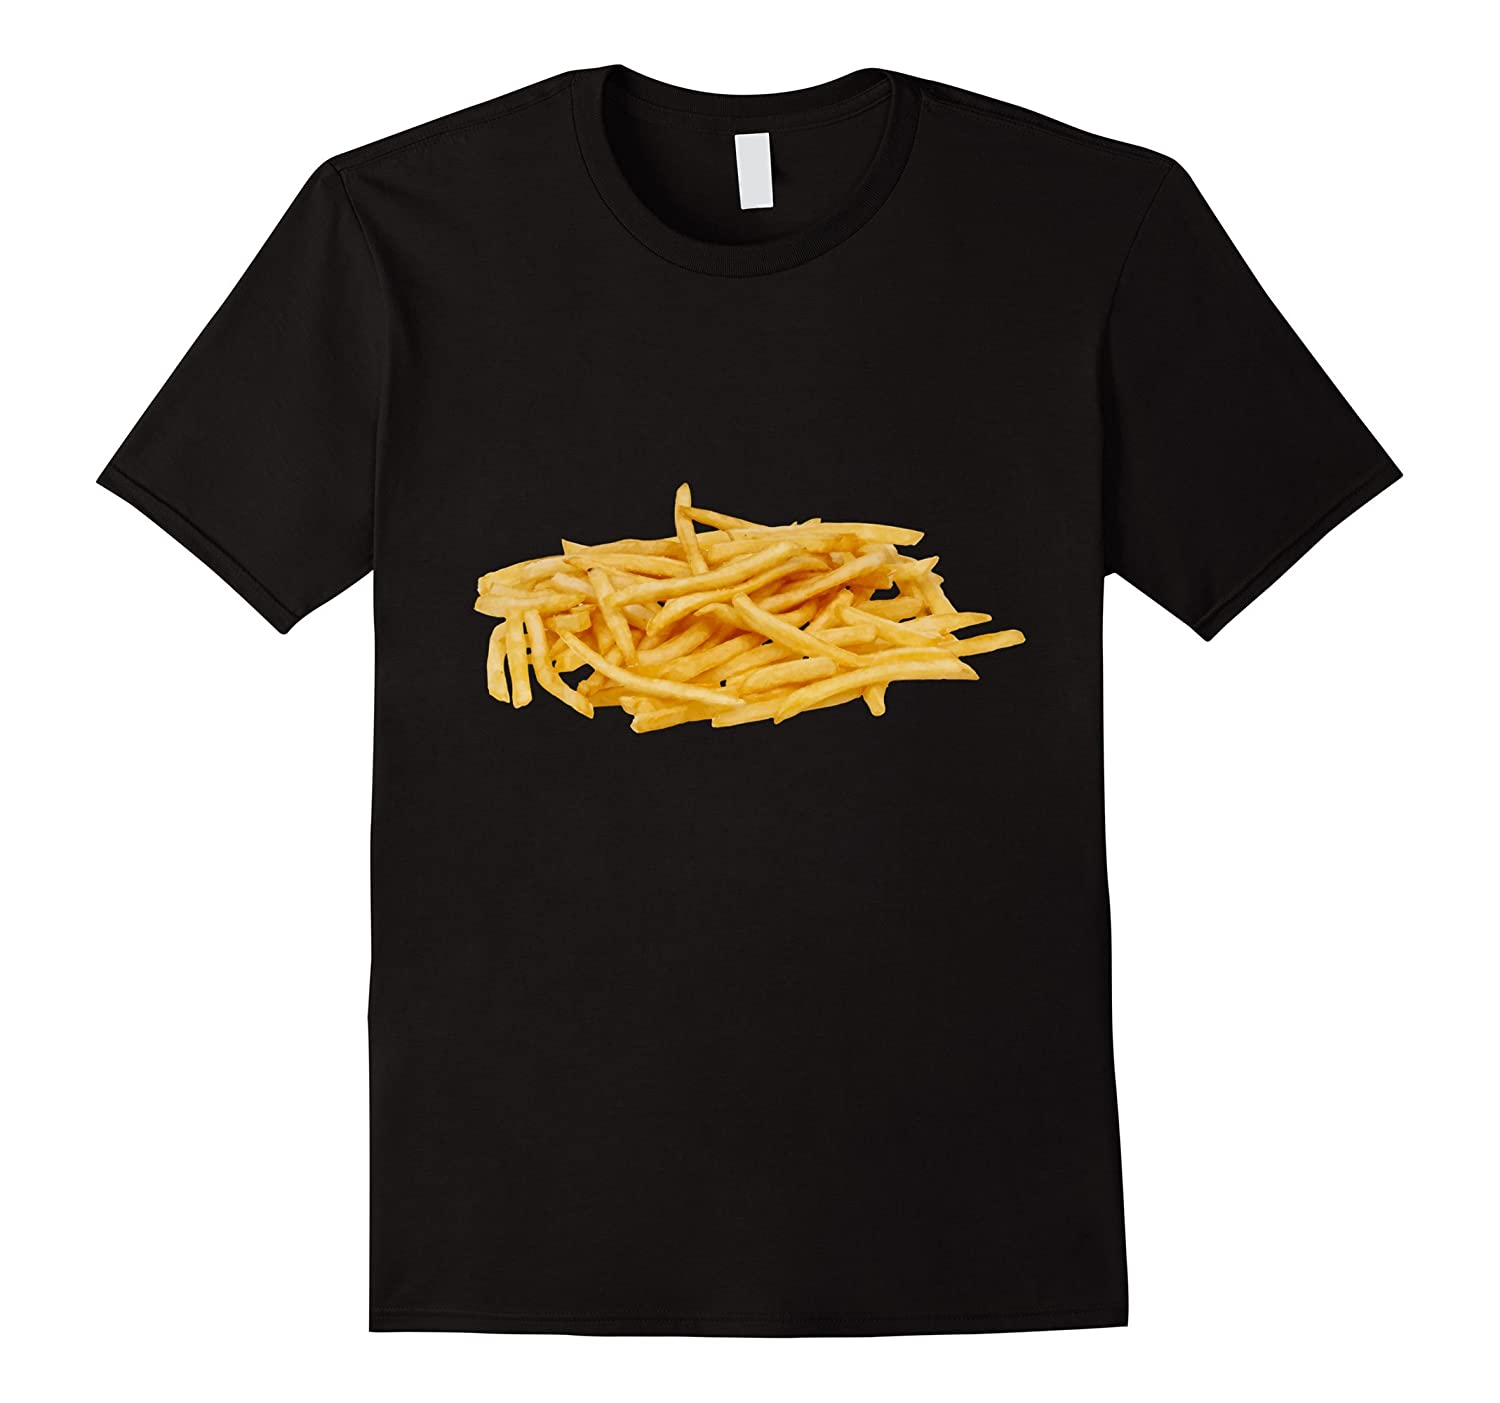 French Fries T-shirt Fast Food Burger Meal Fry Love-FL